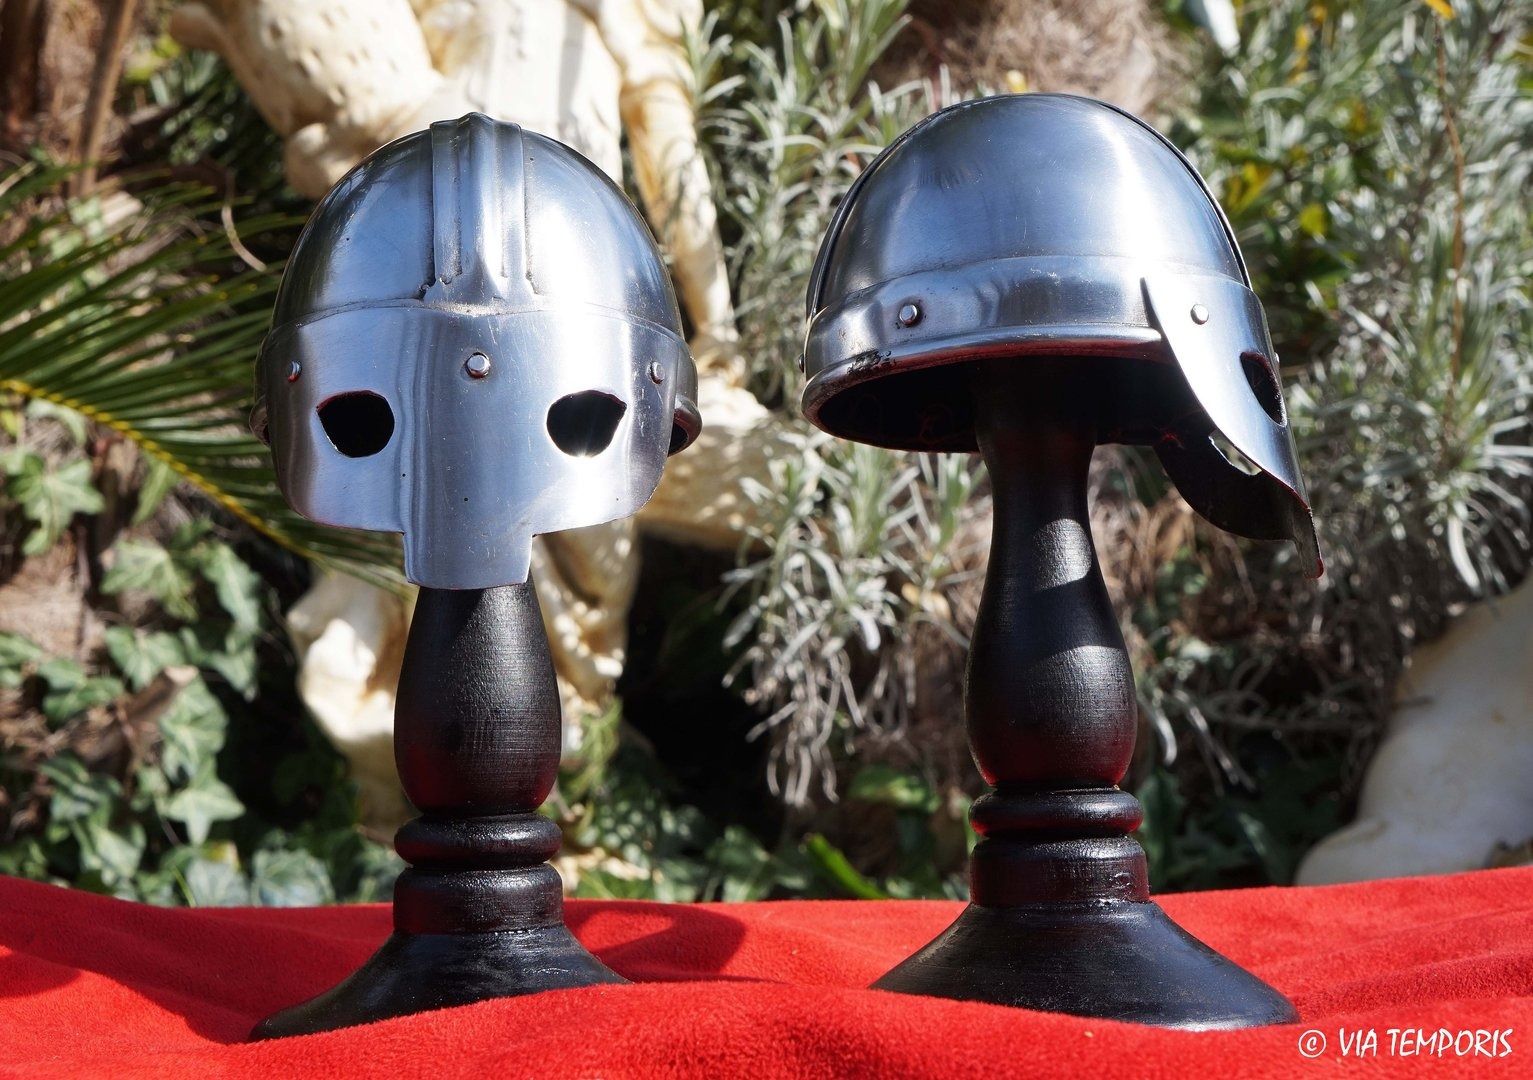 MINI CASQUE VIKING